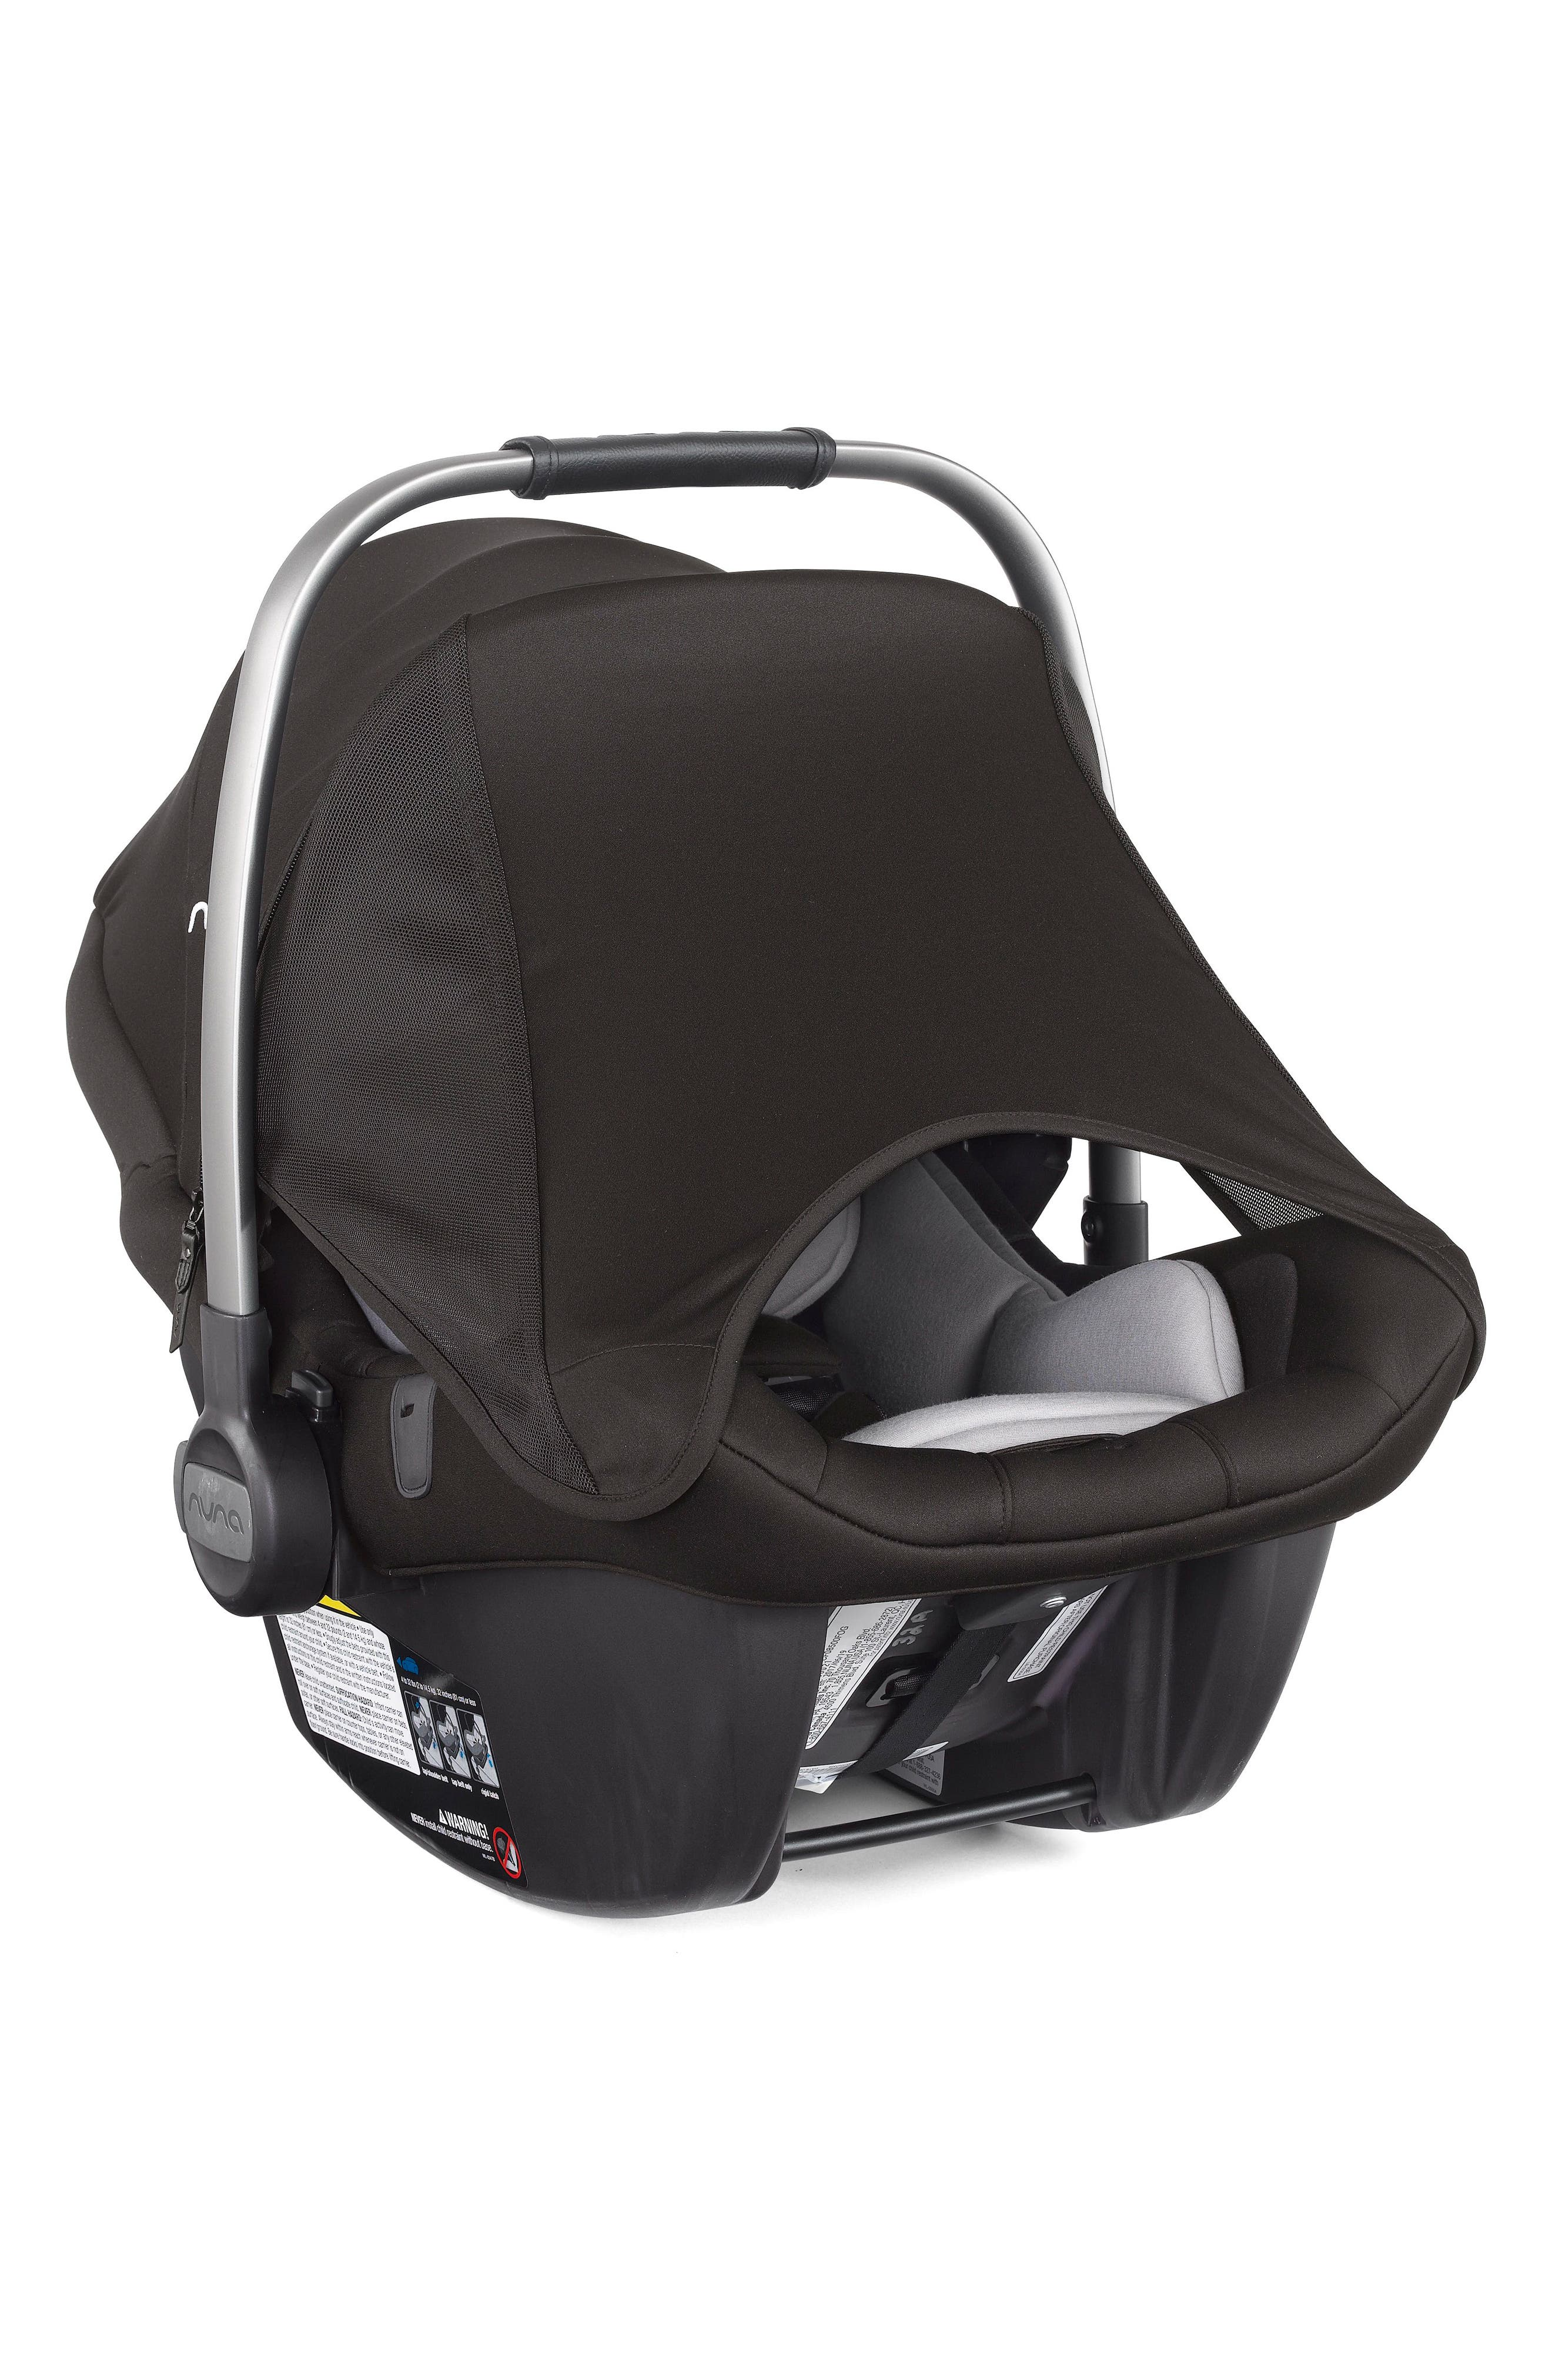 2017 PIPA<sup>™</sup> Lite LX Infant Car Seat & Base,                             Alternate thumbnail 7, color,                             Caviar